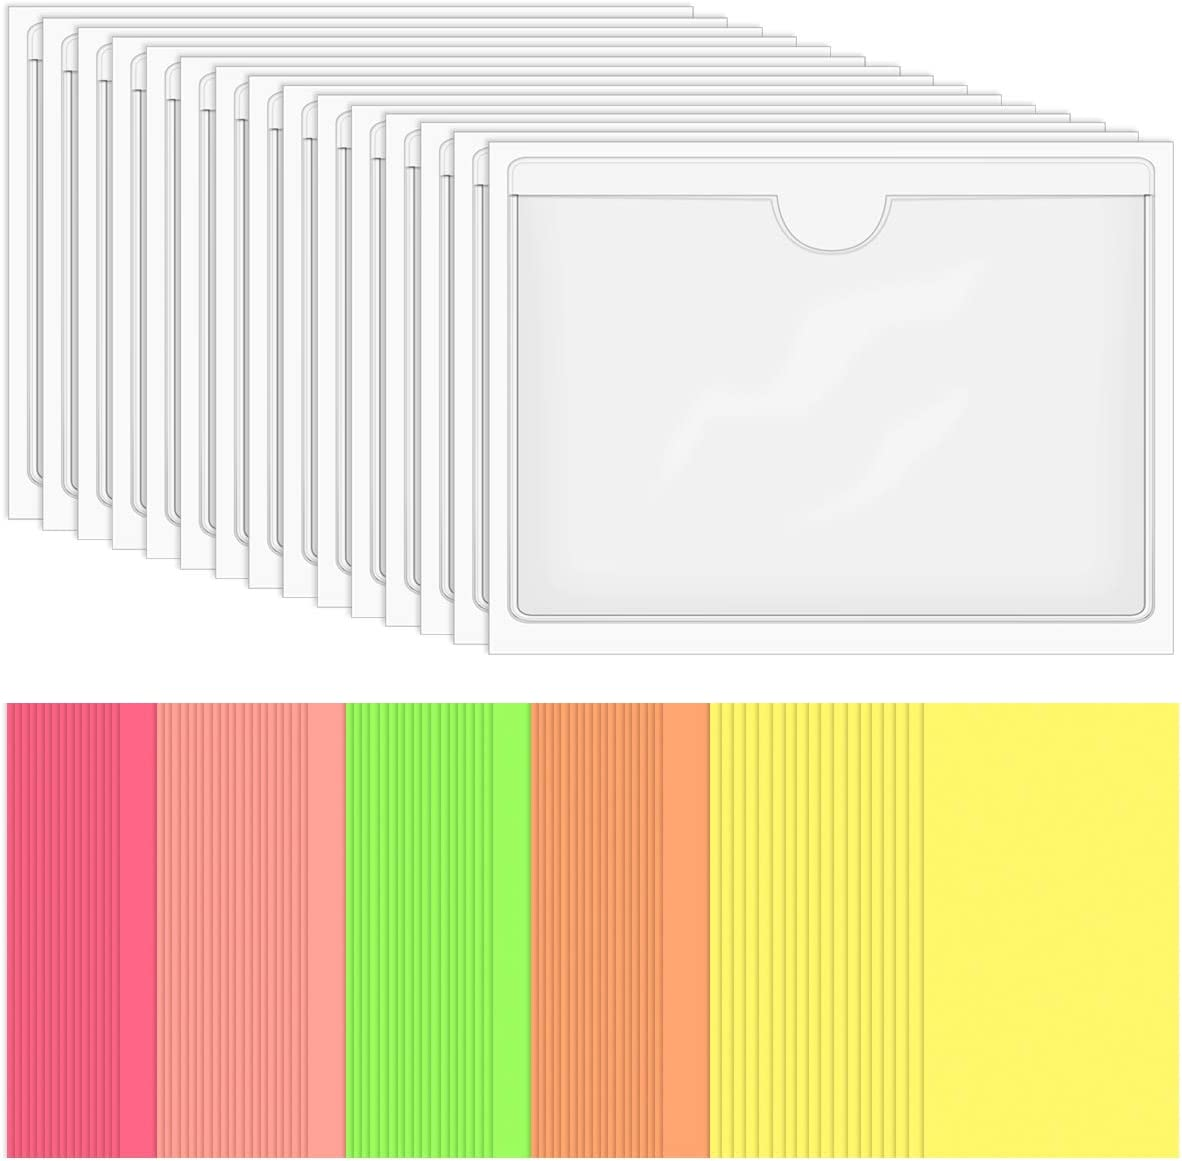 SKPPC 40 Pack Self-Adhesive Index Card Holder, Clear Plastic Library Card Pockets Label Holder with Top Open, Ideal Card Holder and 60 Sheets Colorful Index Cards, 3.8 x 5.3 Inch